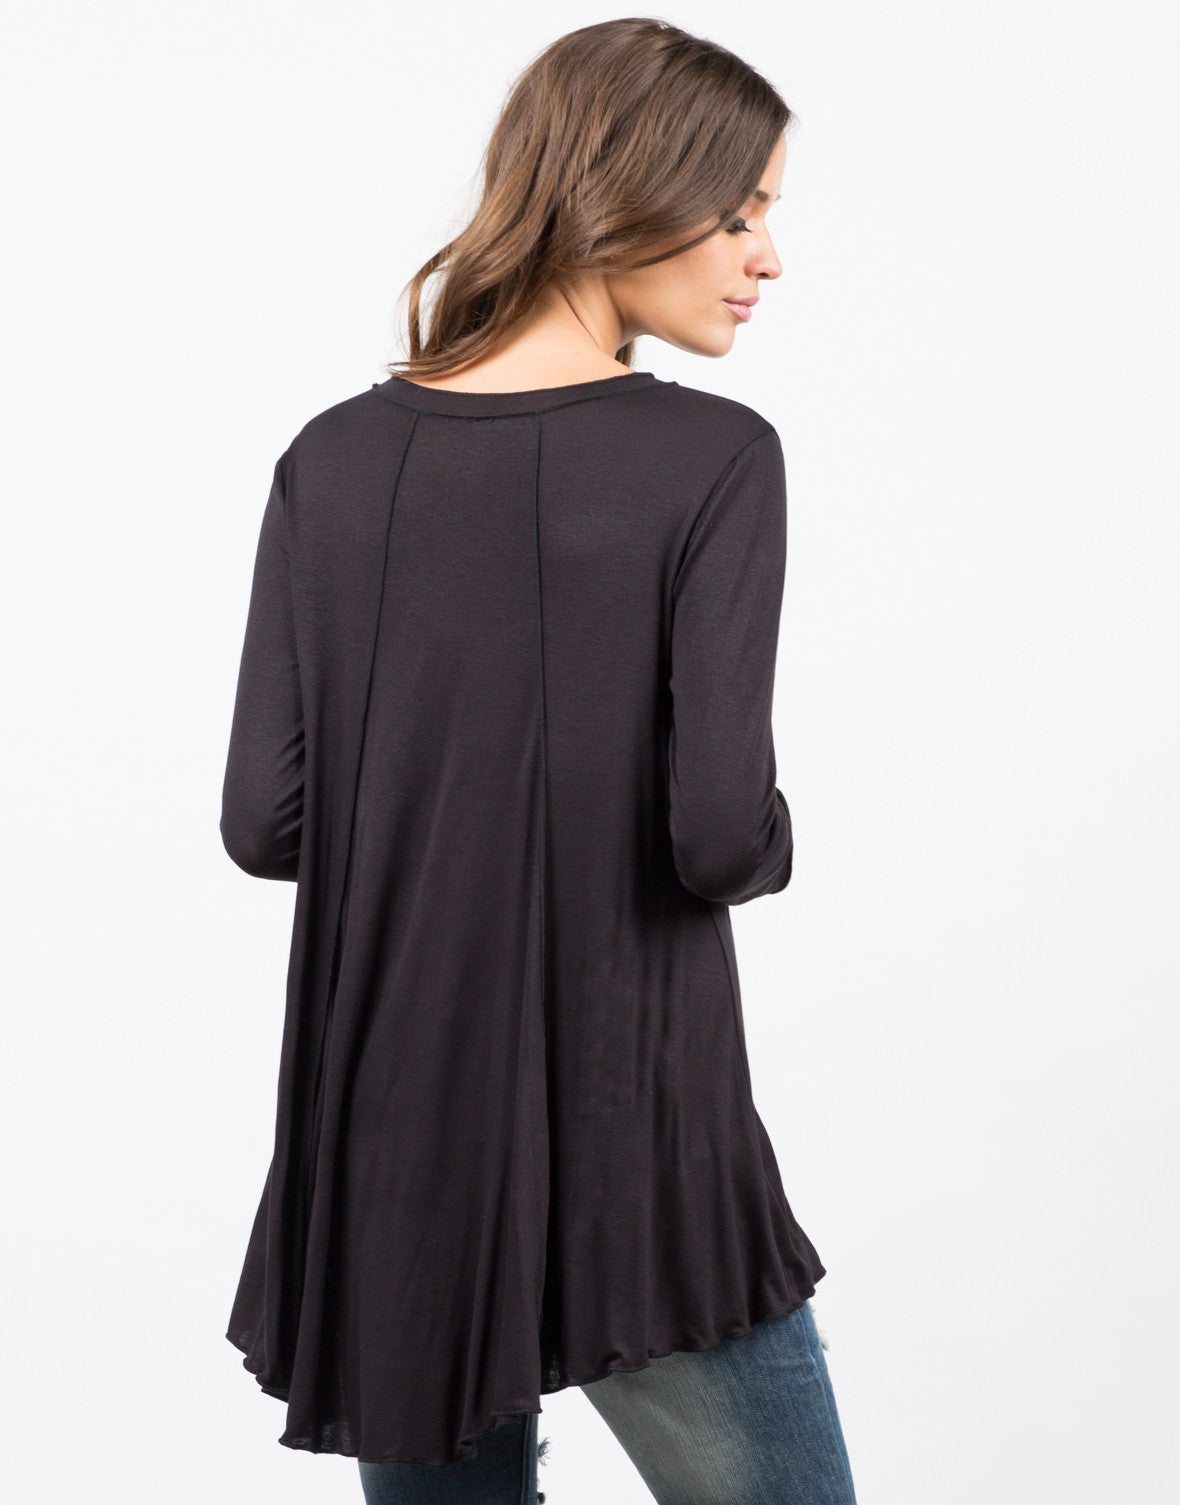 Back View of Exposed Seams Tunic Top